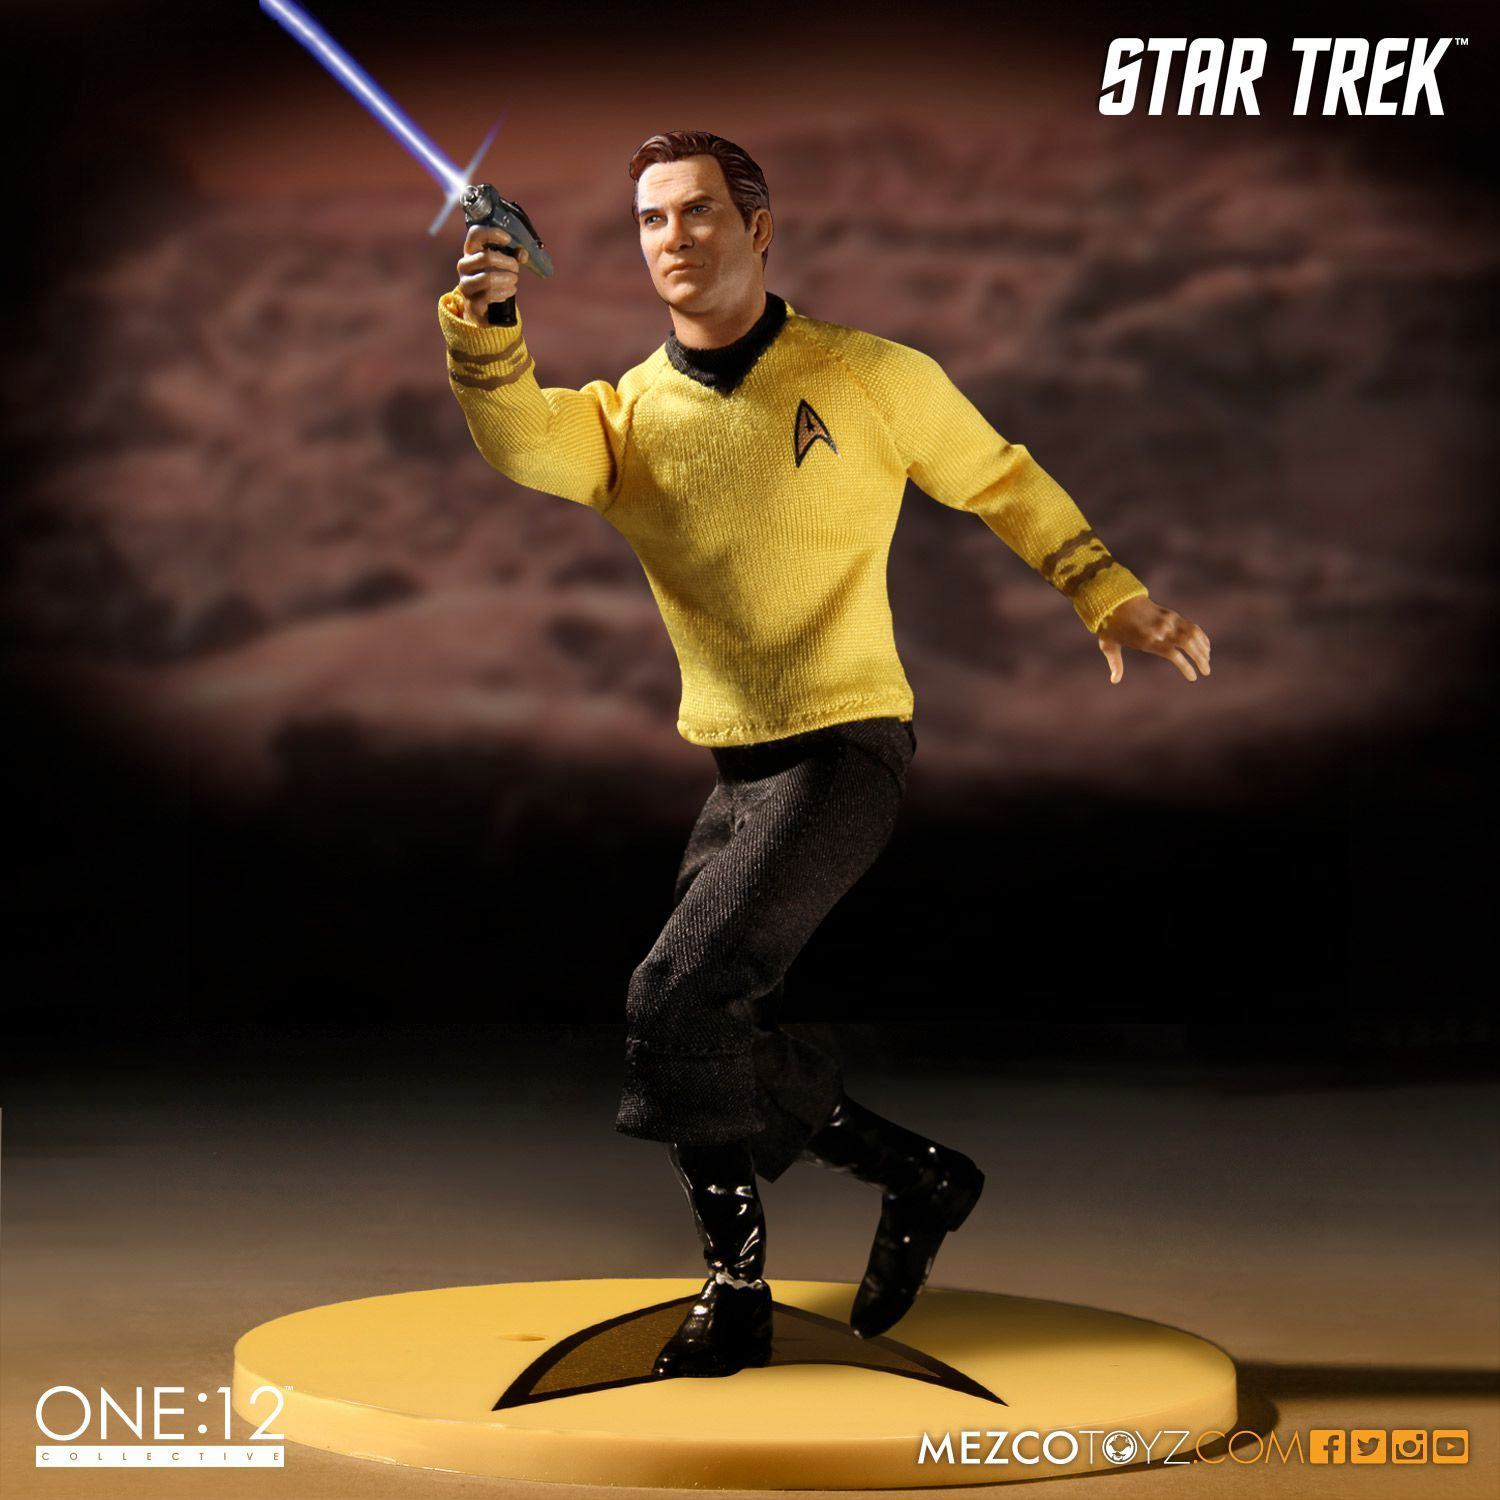 Kirk-Star-Trek-One-12-Collective-Action-Figure-08